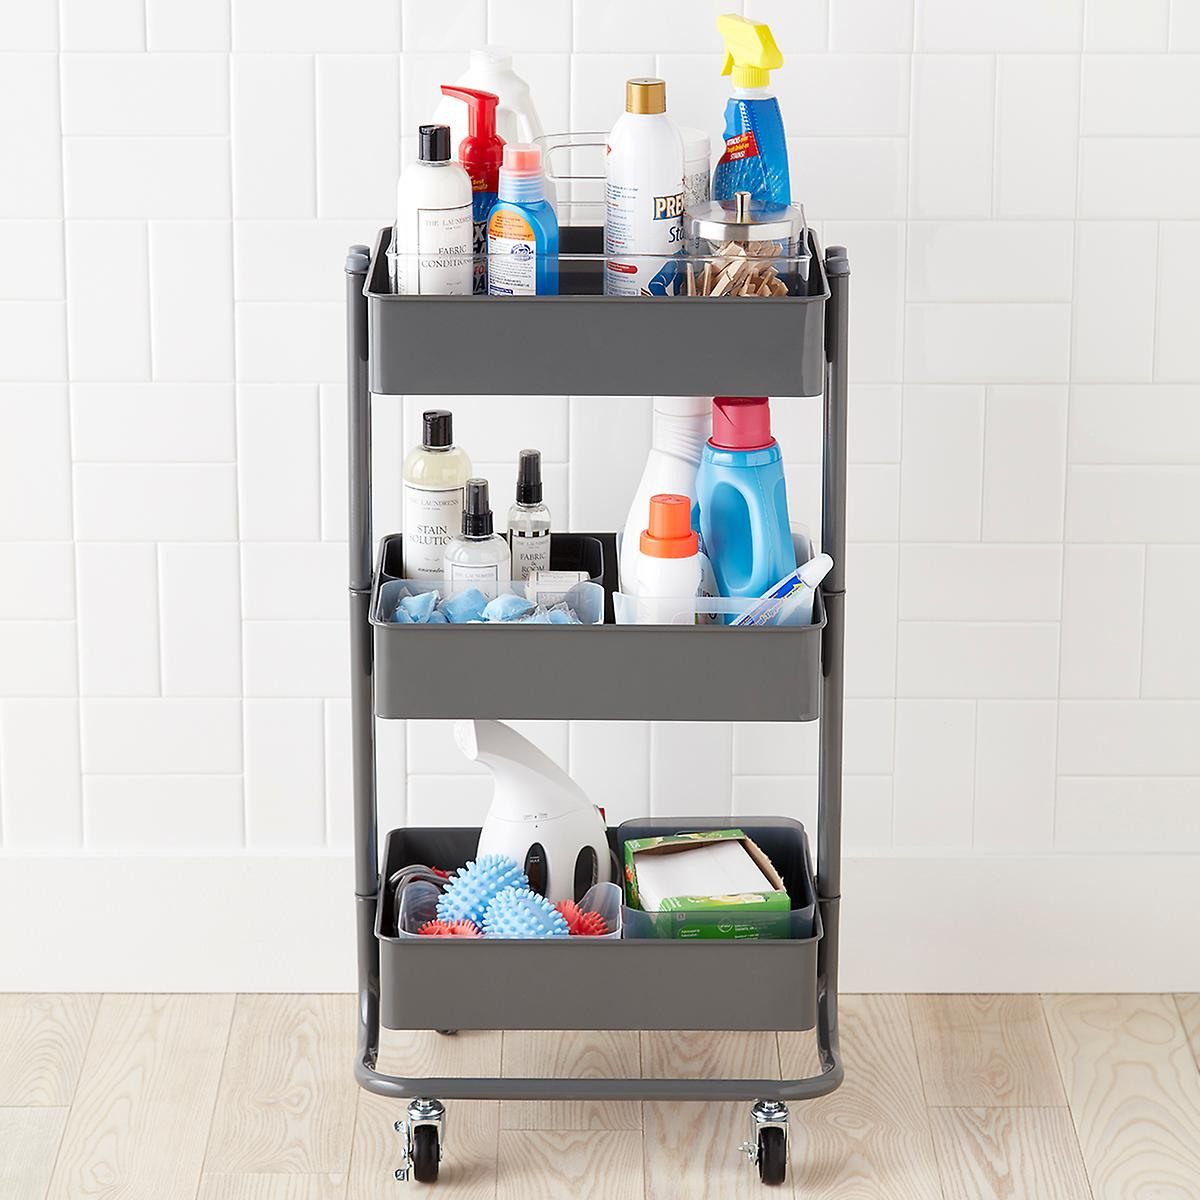 Laundry Cleaning Storage Cart Starter